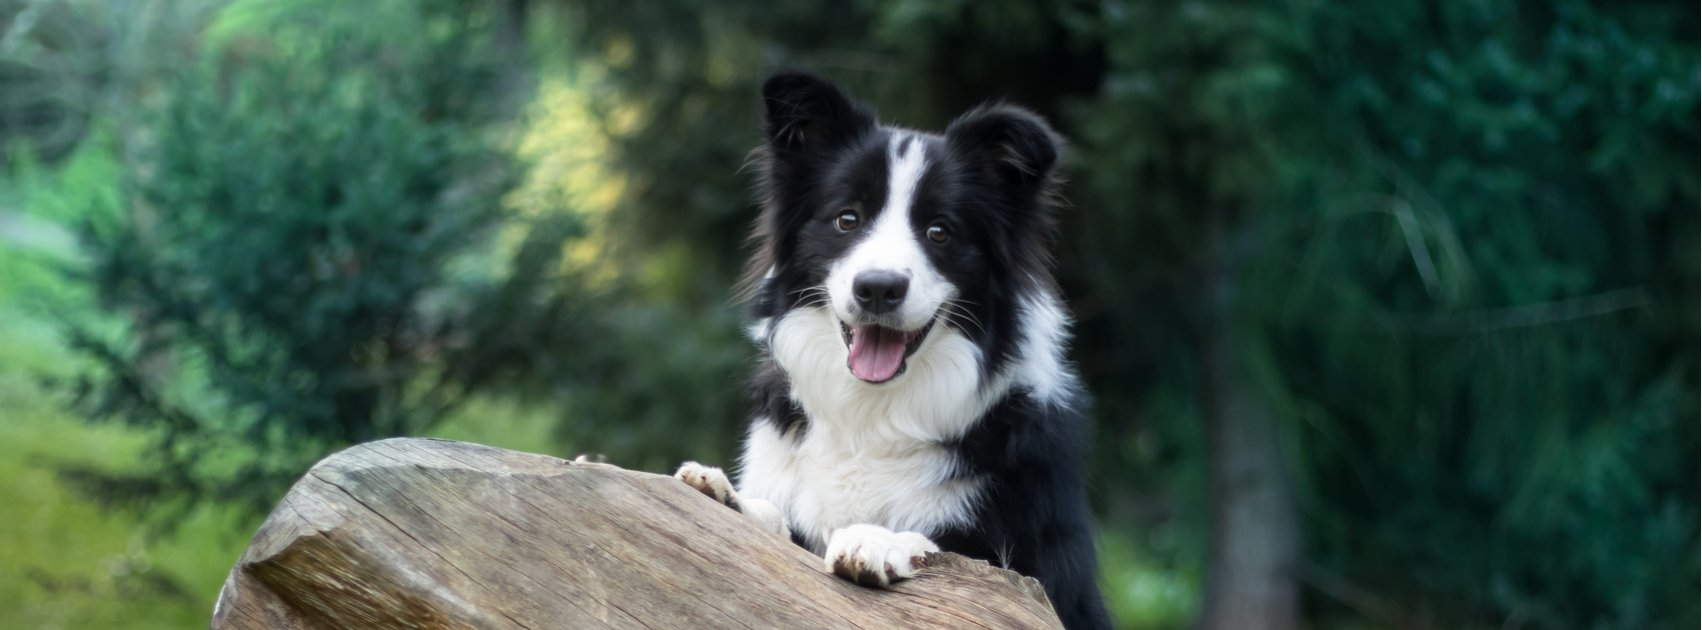 Border Collie Health Issues: How to Care for Your Furry Friend